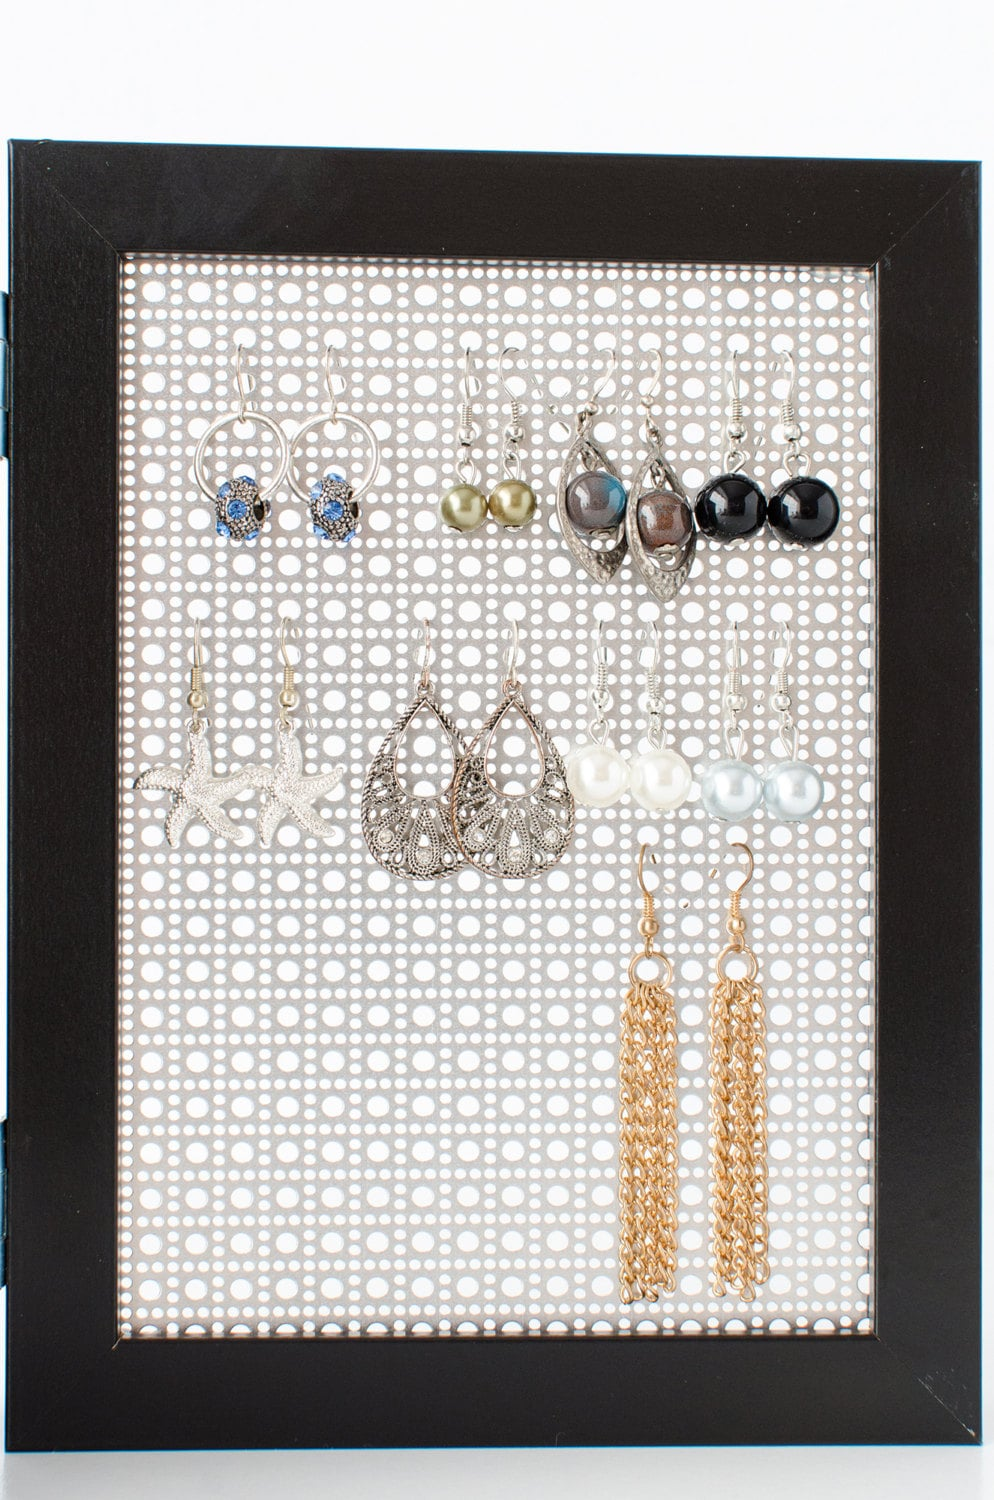 Earring Holder Black 5x7 Double Frames Stud Hook Earring Organizer